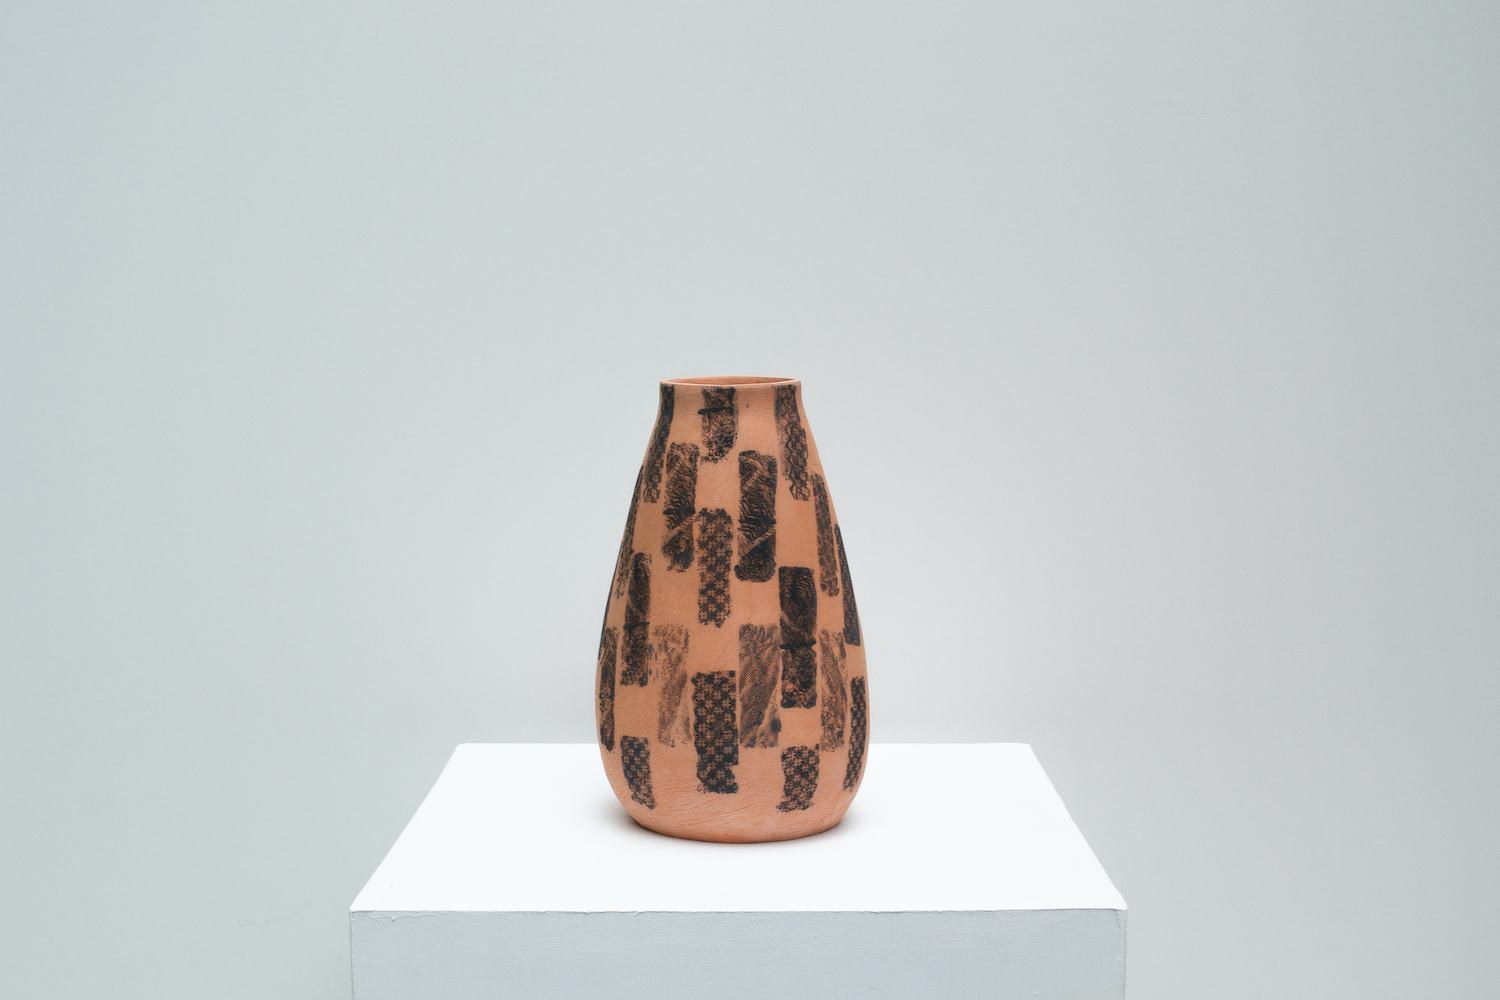 Hannah deJonge / Ripped Fragments (Front View) - Screen-printed underglaze on stoneware 2020